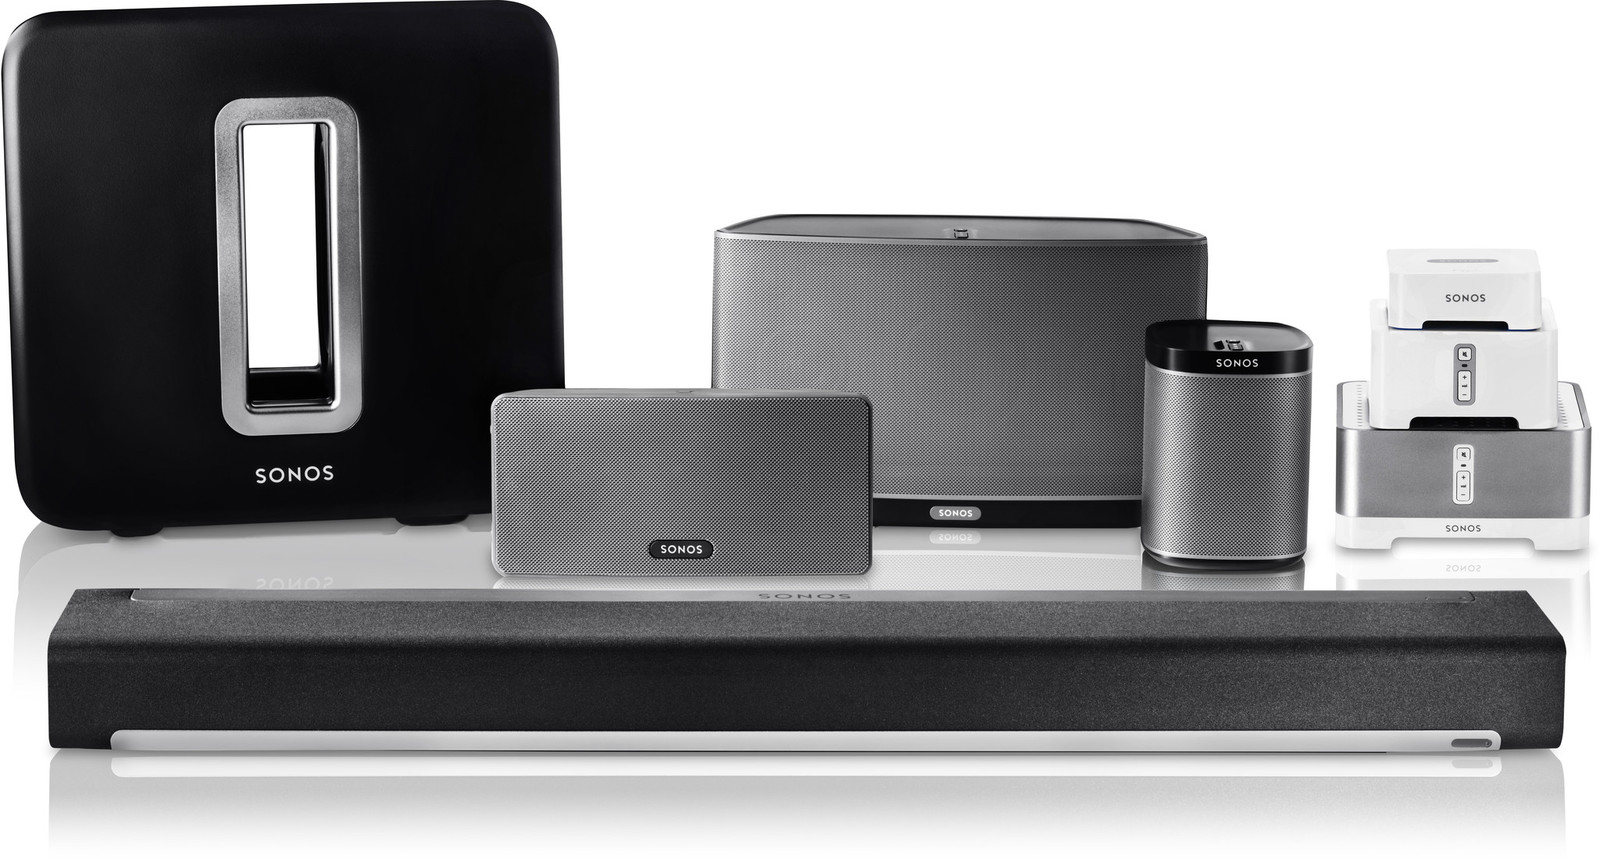 sonos-family-press-hero